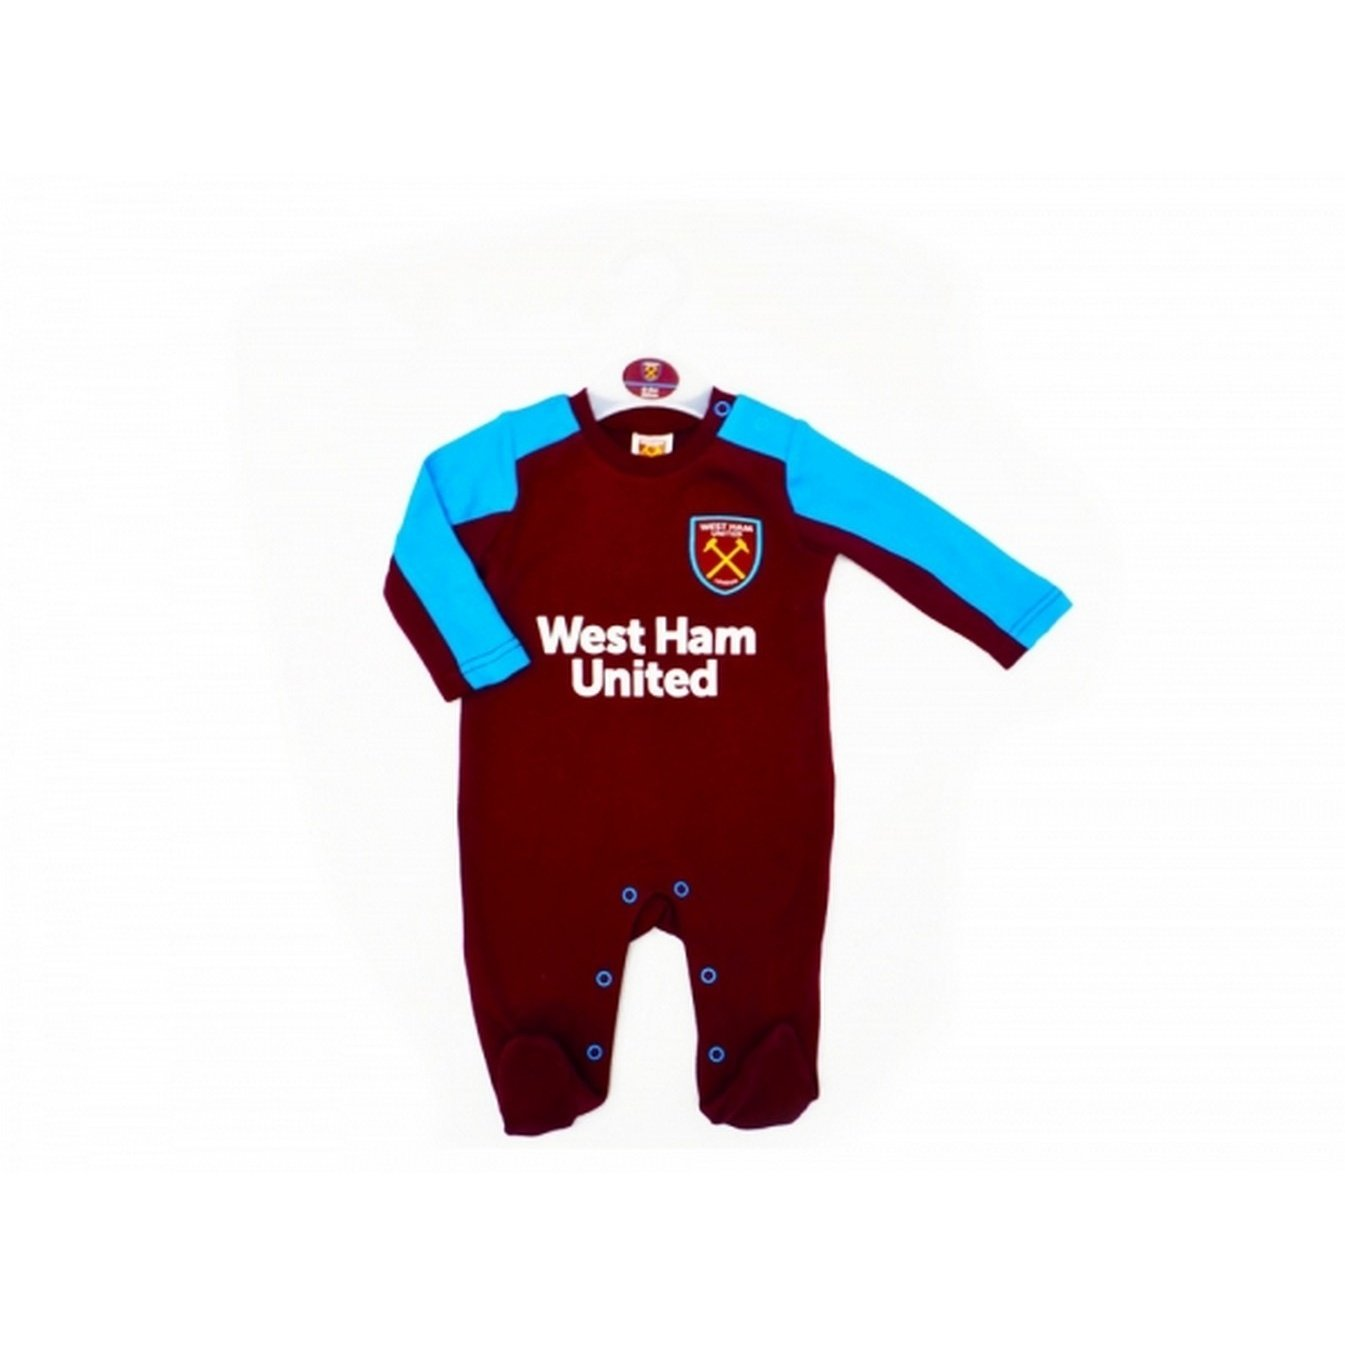 West Ham United Baby Sleepsuit 2017 / 18 B076KRCFZS9 12 Months